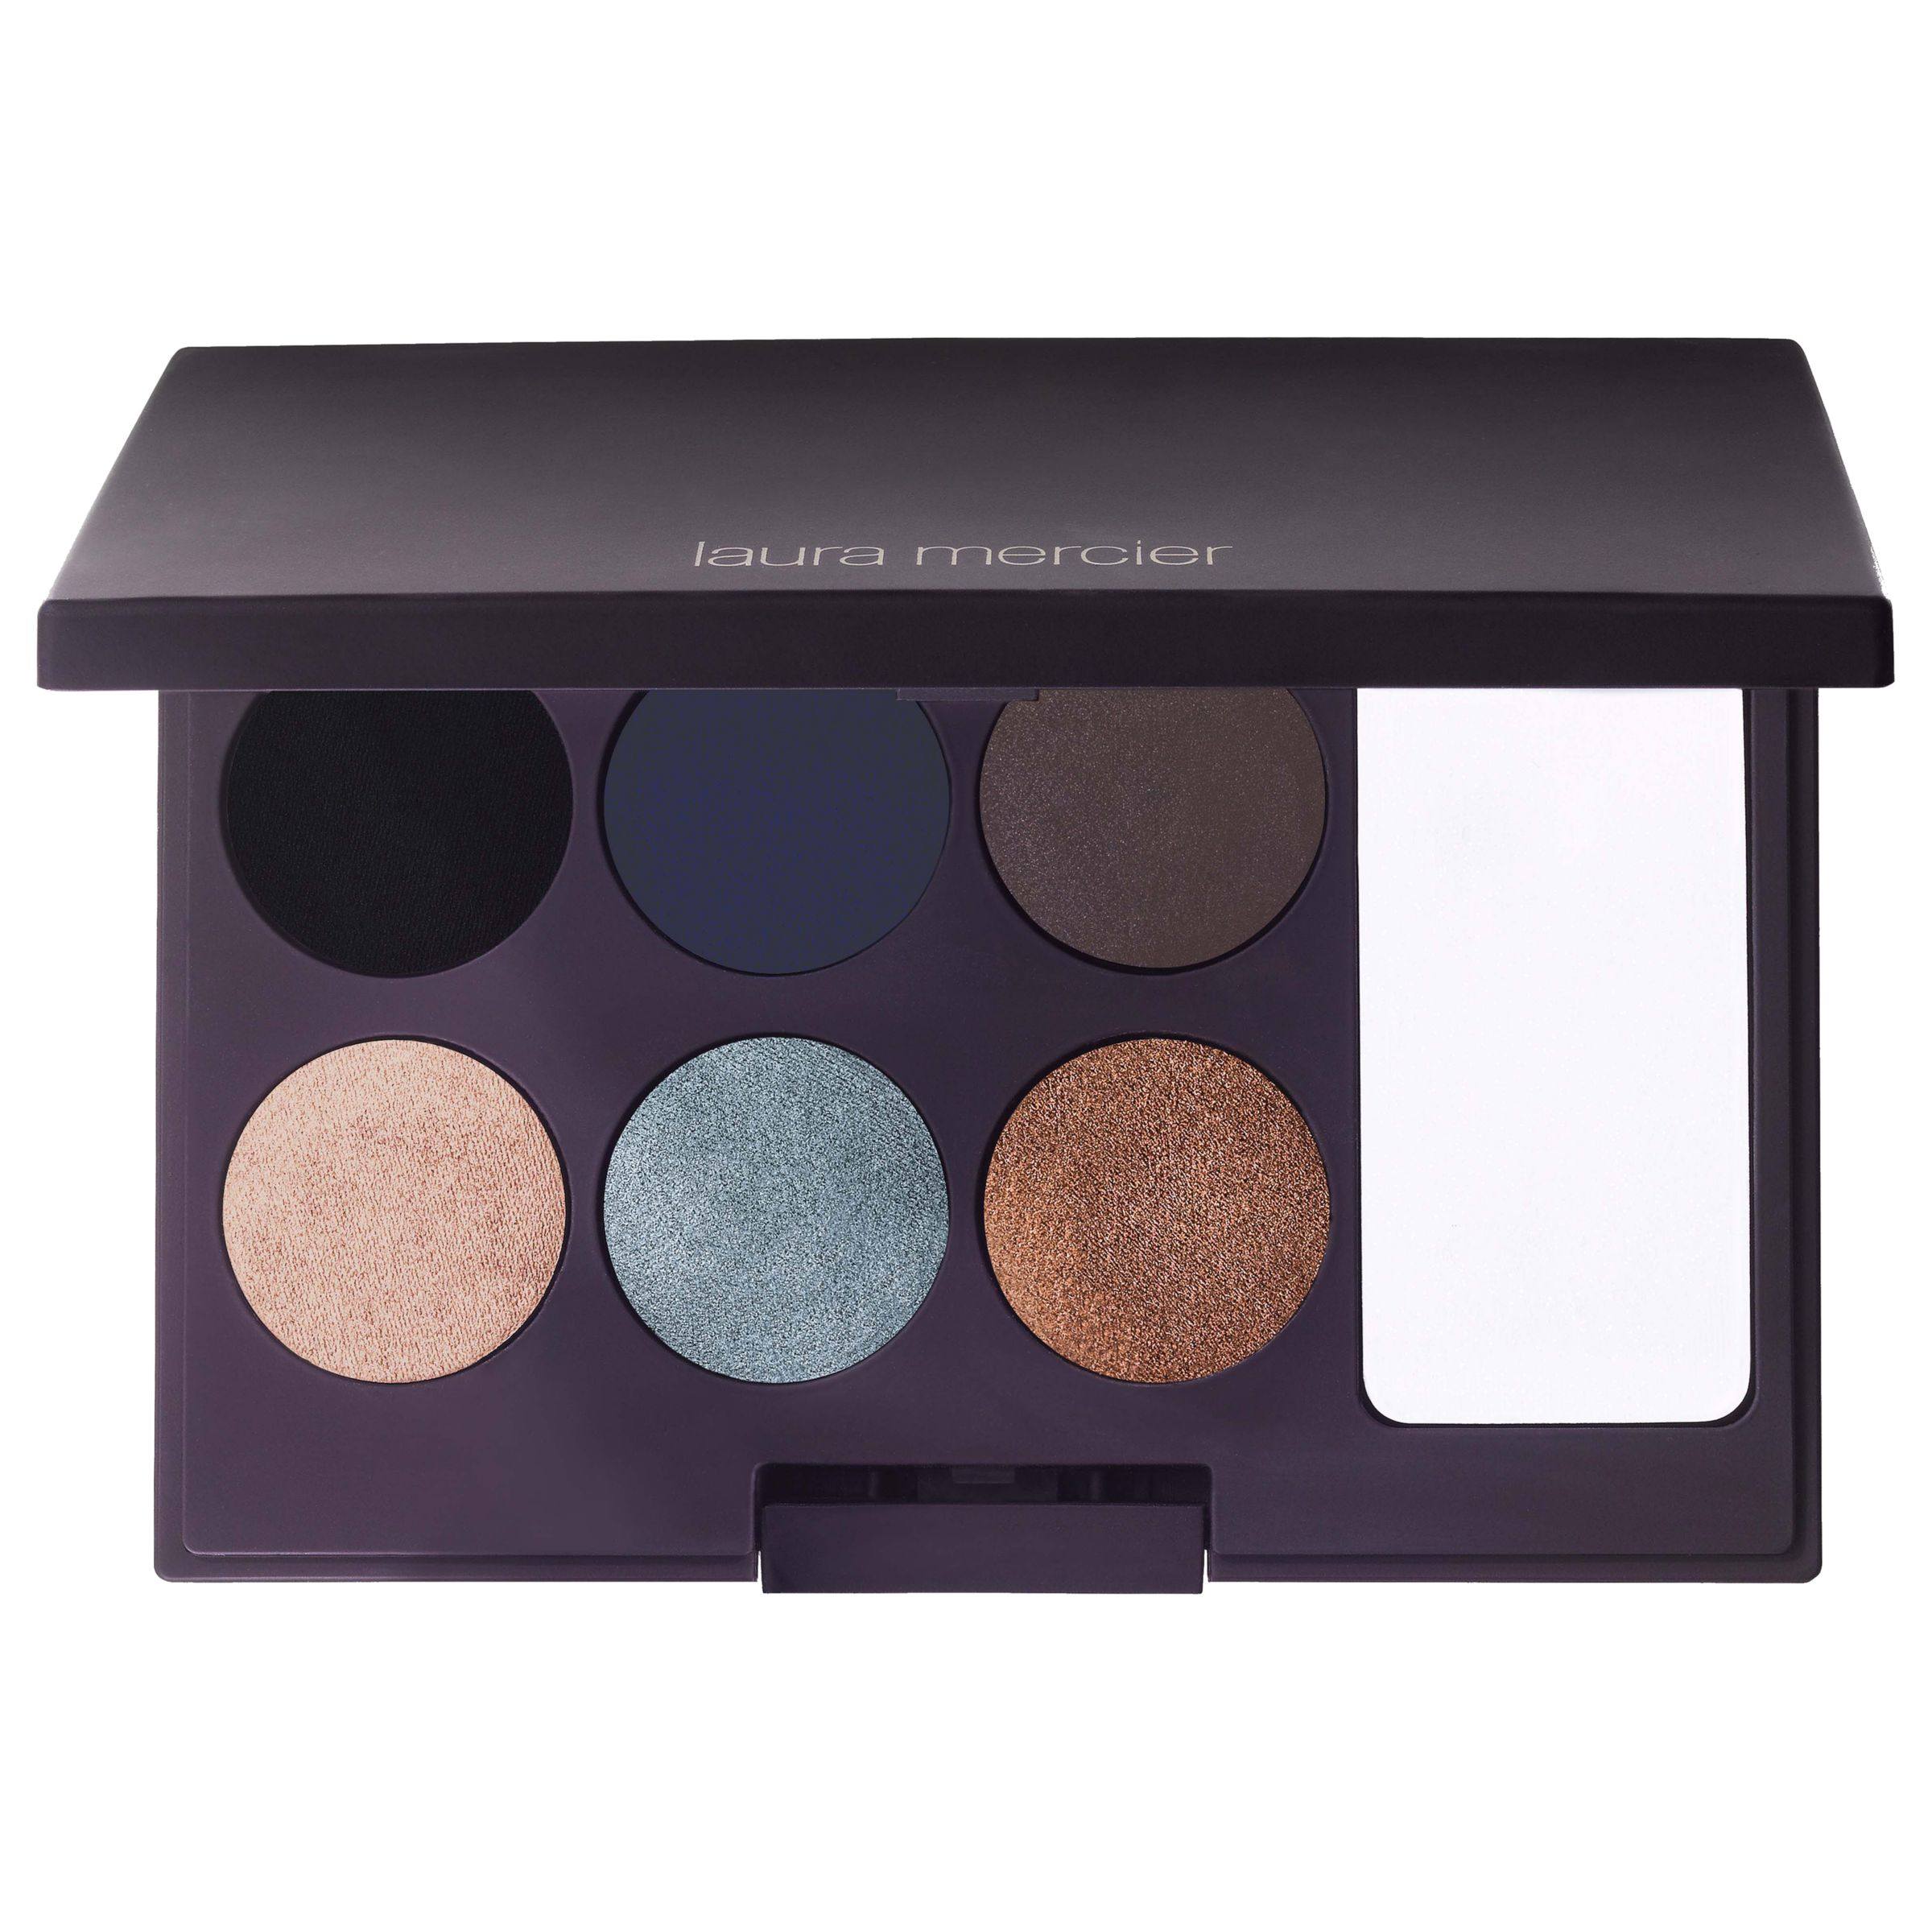 Laura Mercier Laura Mercier Ediorial Eye Palette Intense Clay, Multi